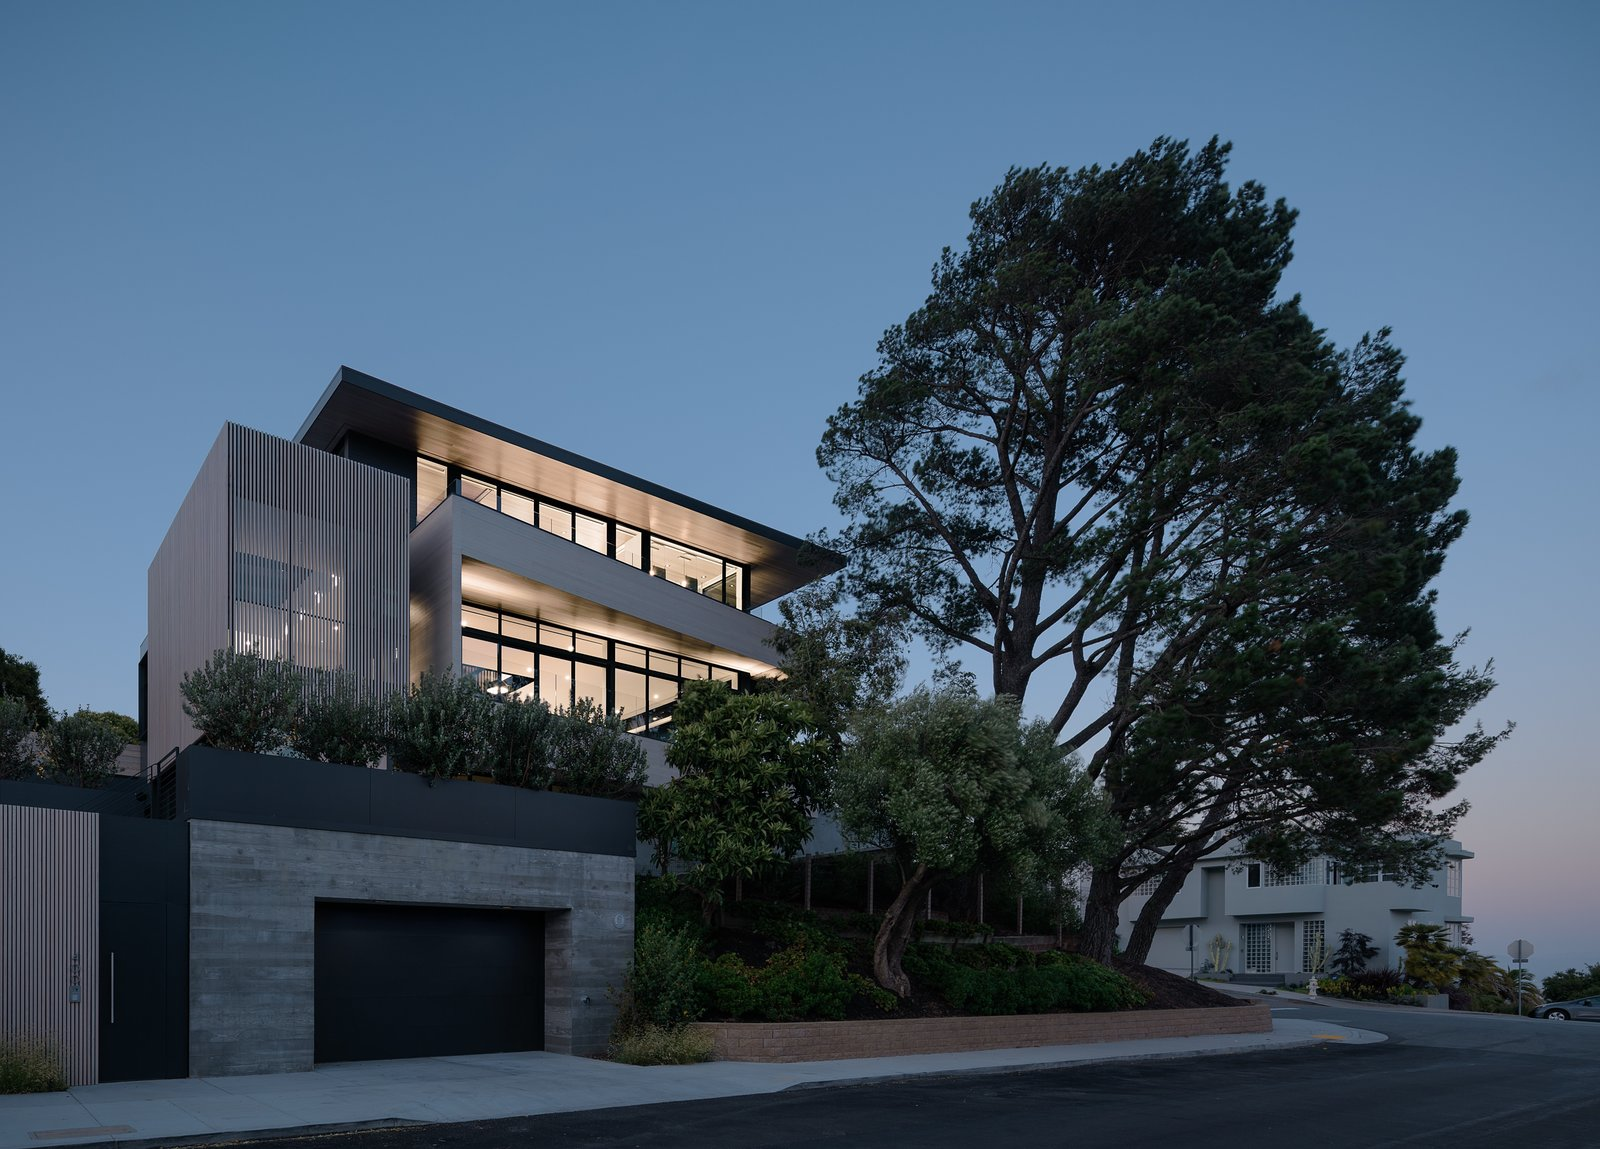 Exterior, Flat, House, Concrete, Wood, Metal, Glass, and Metal Exterior at Dusk  Best Exterior Metal Wood House Glass Photos from Dolores Heights Residence I